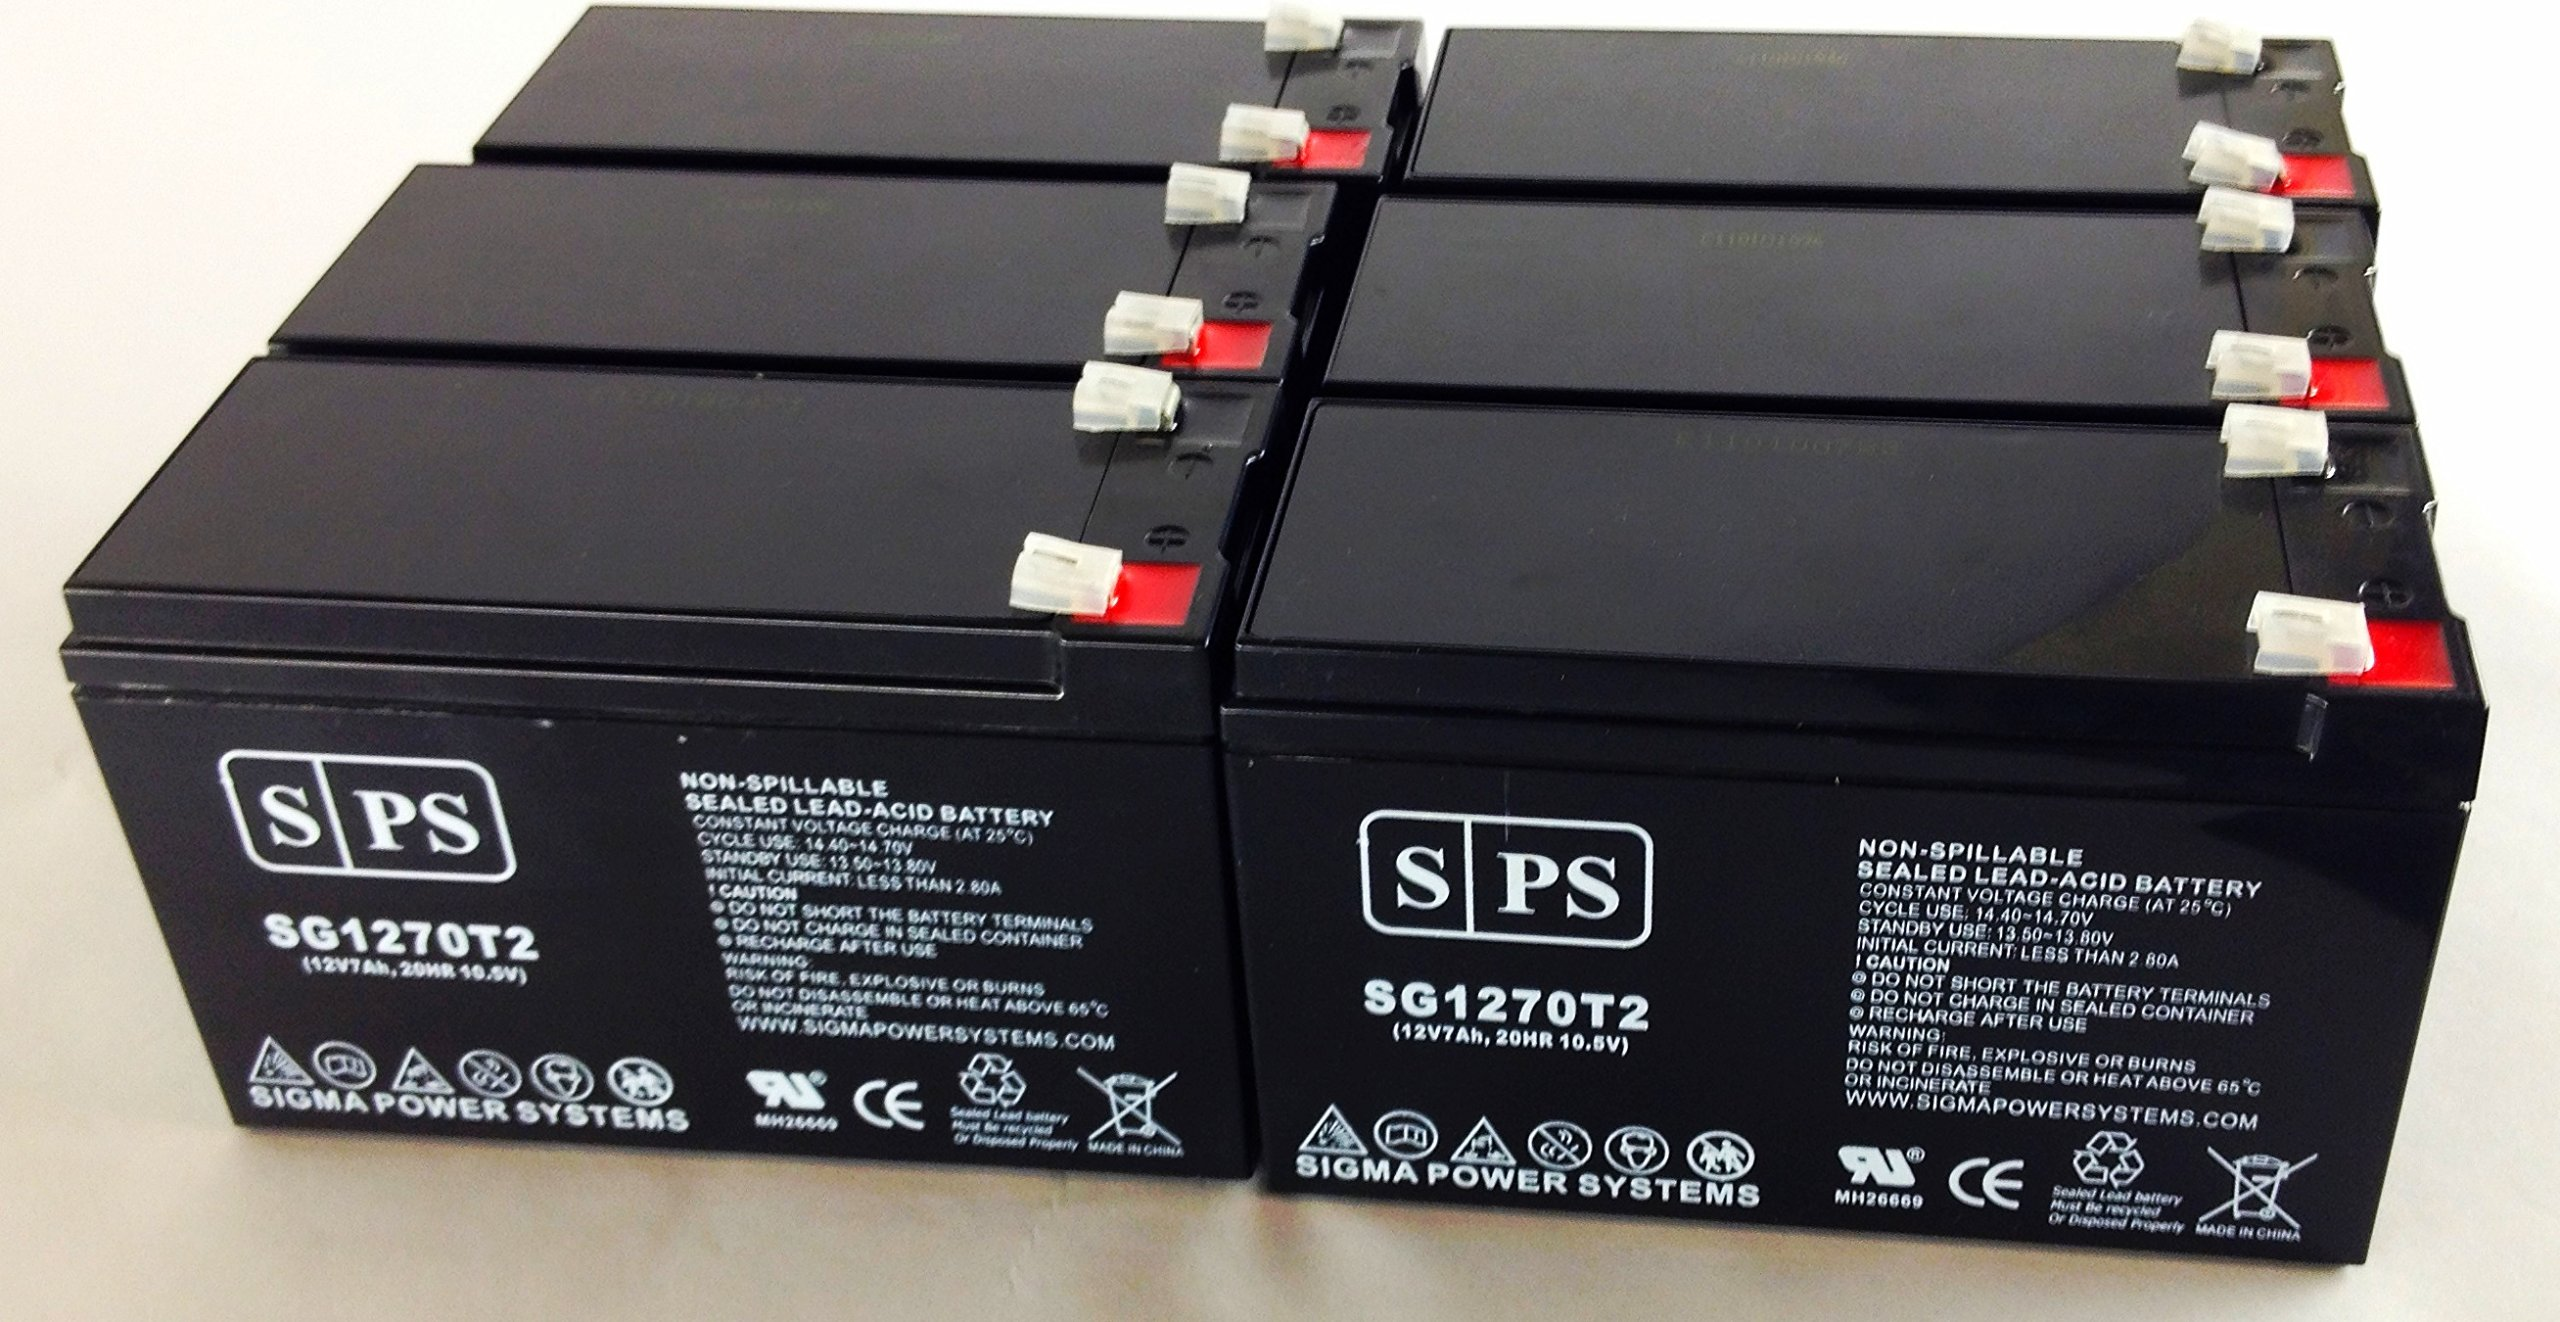 12V 7Ah (From SPS) Roche Diagnostics 7640 Microgas Monitor Medical Replacement Battery (6 Pack)